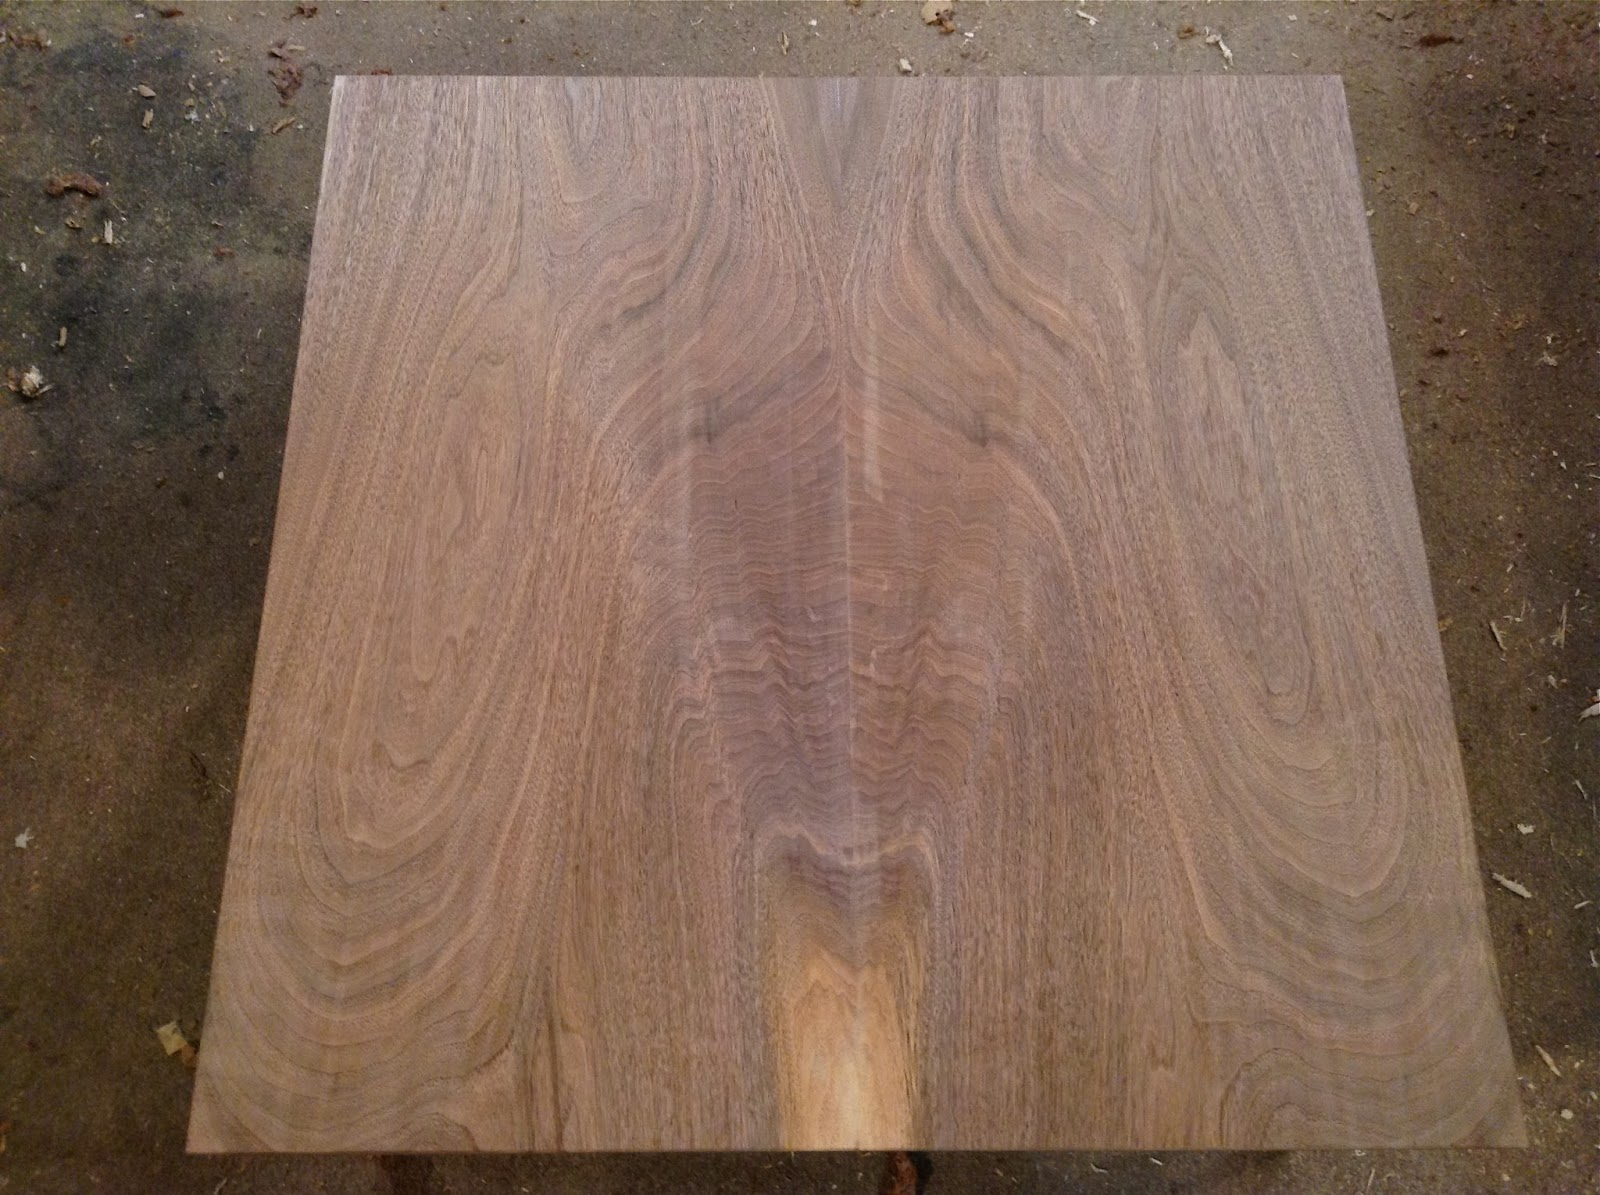 Book-matched Walnut TOP